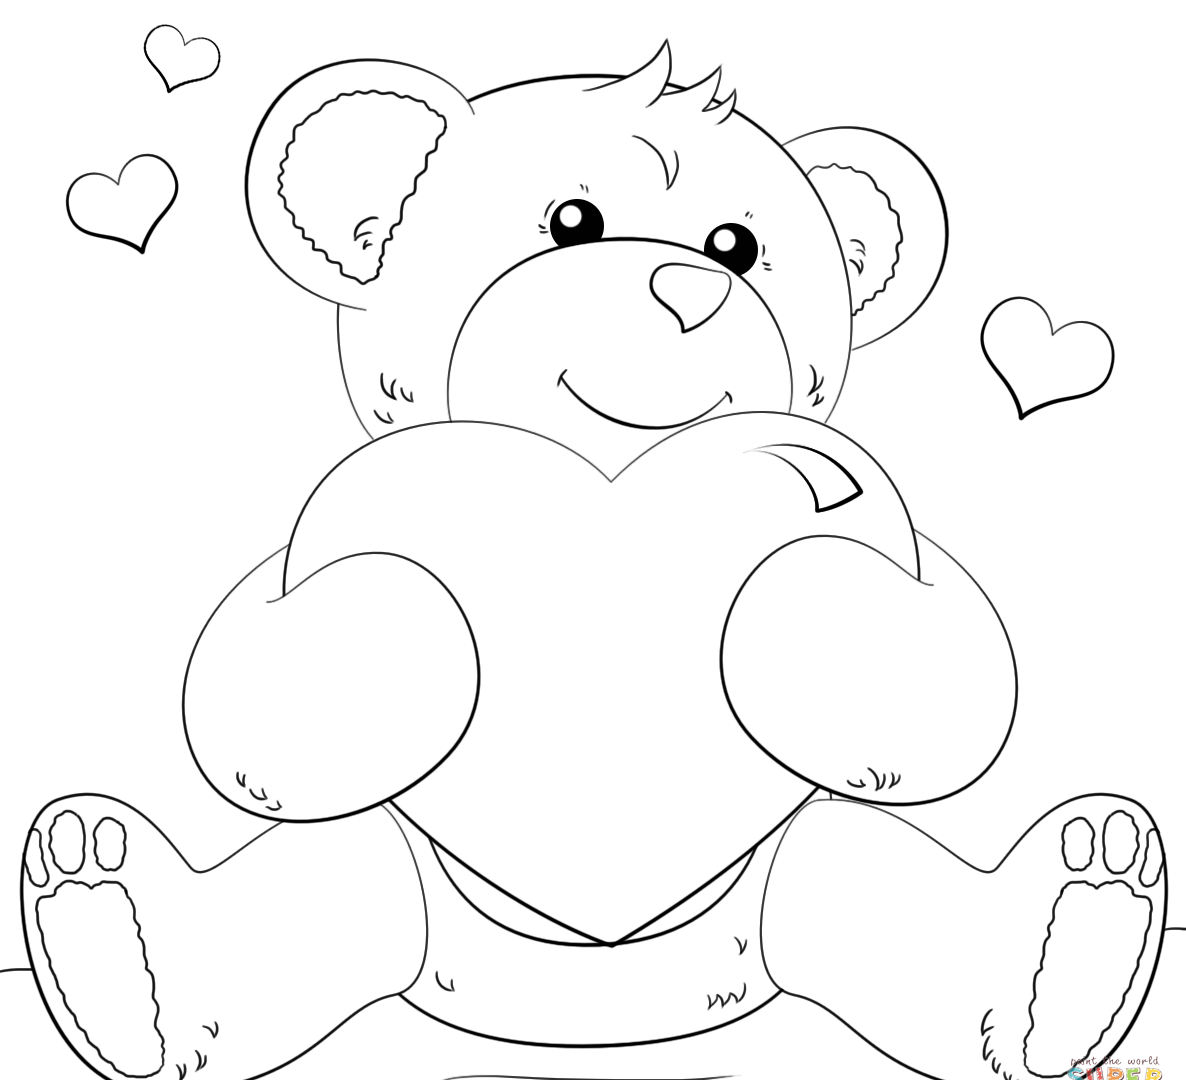 heart and roses coloring pages coloring pages of hearts with wings and roses at heart coloring and pages roses